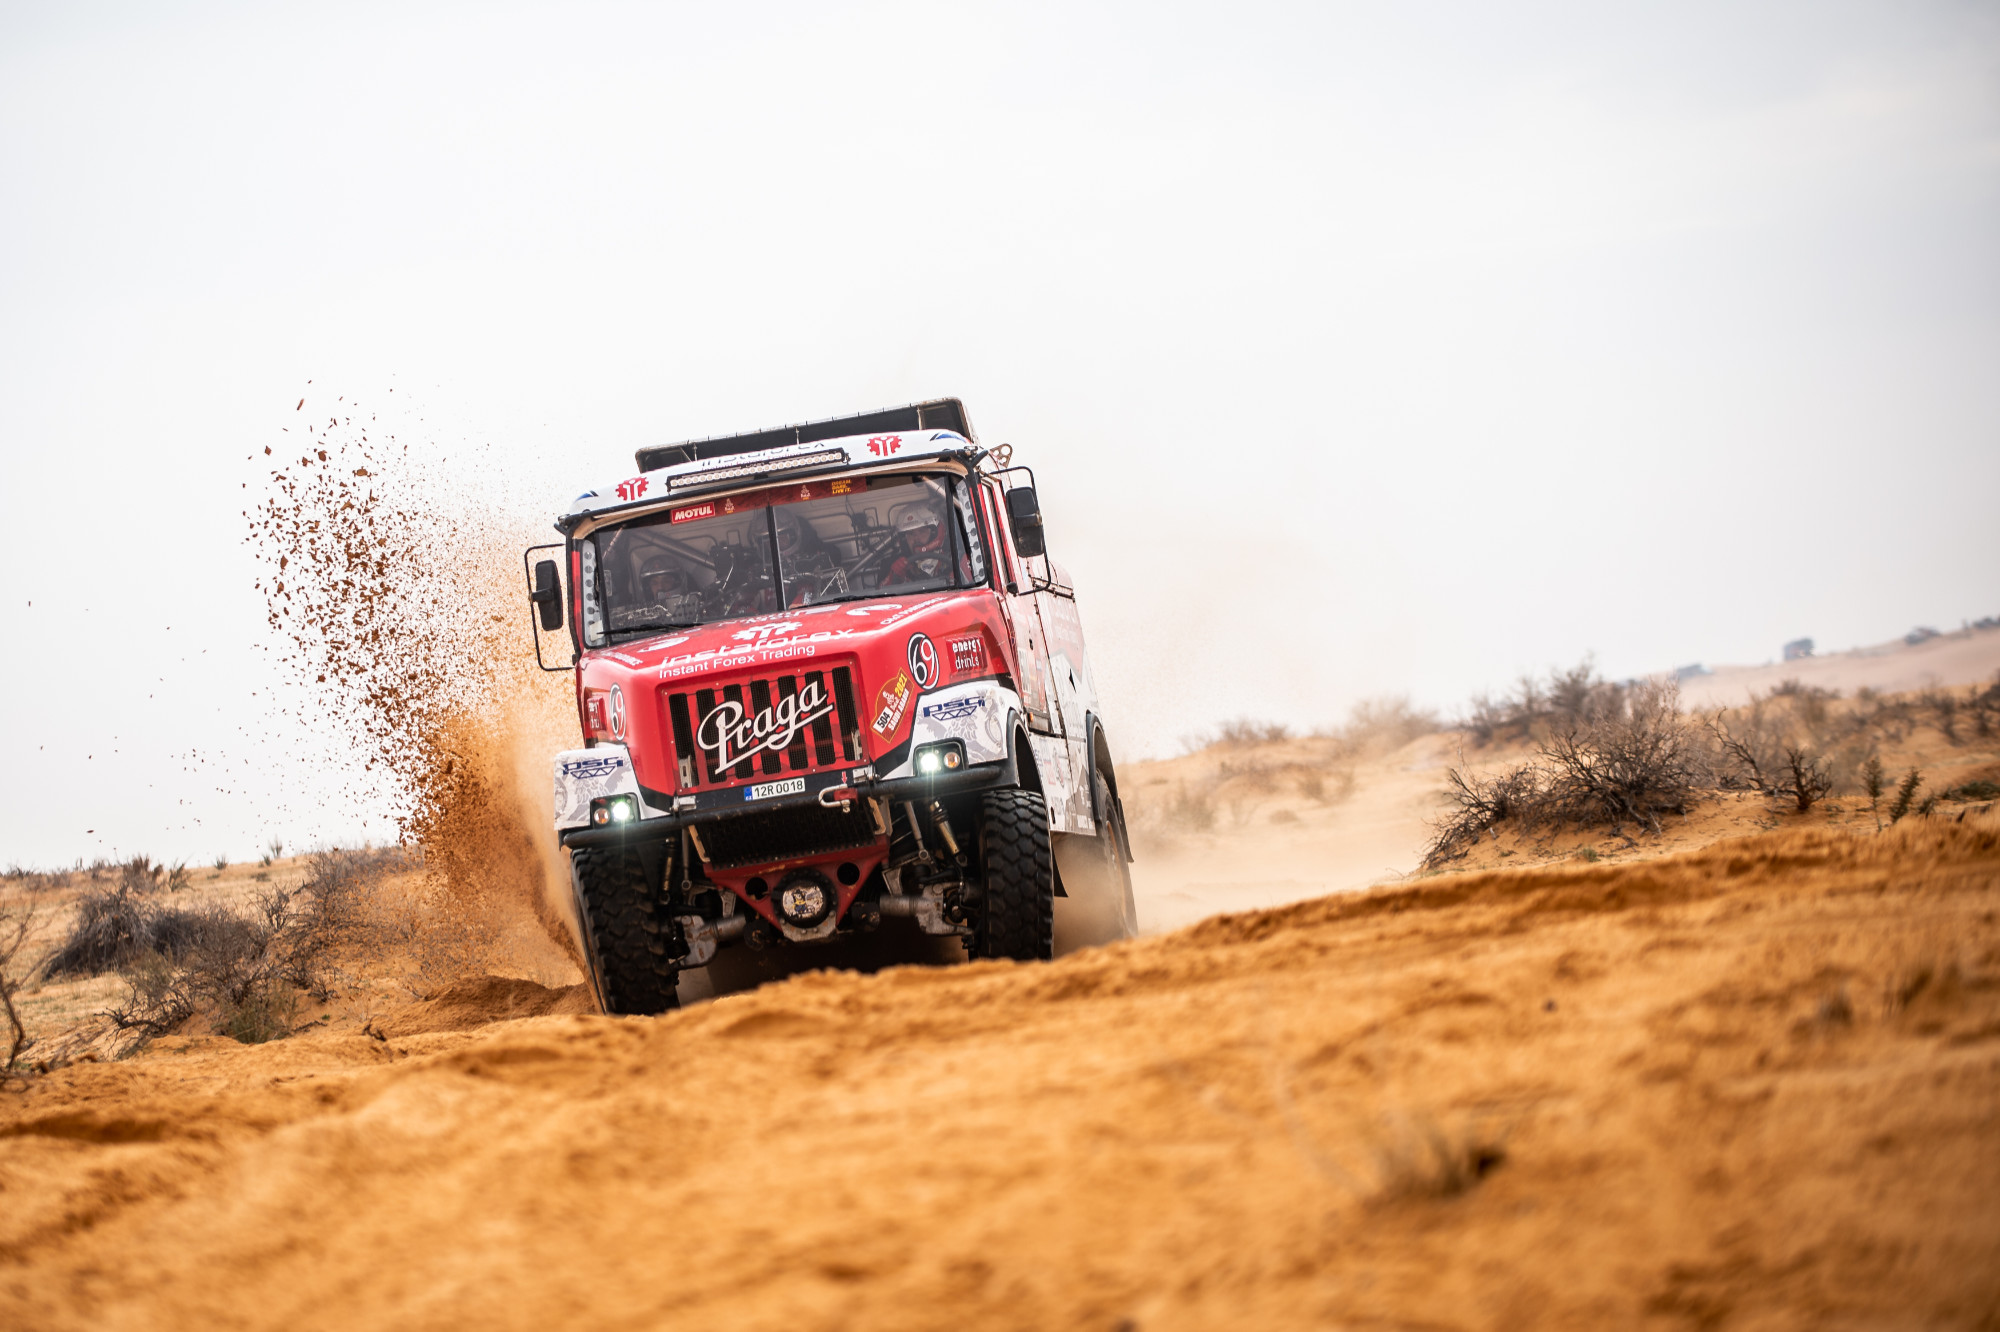 Praga | Dakar 2021: The Lady – The Fighter & The Queen – The Salvation